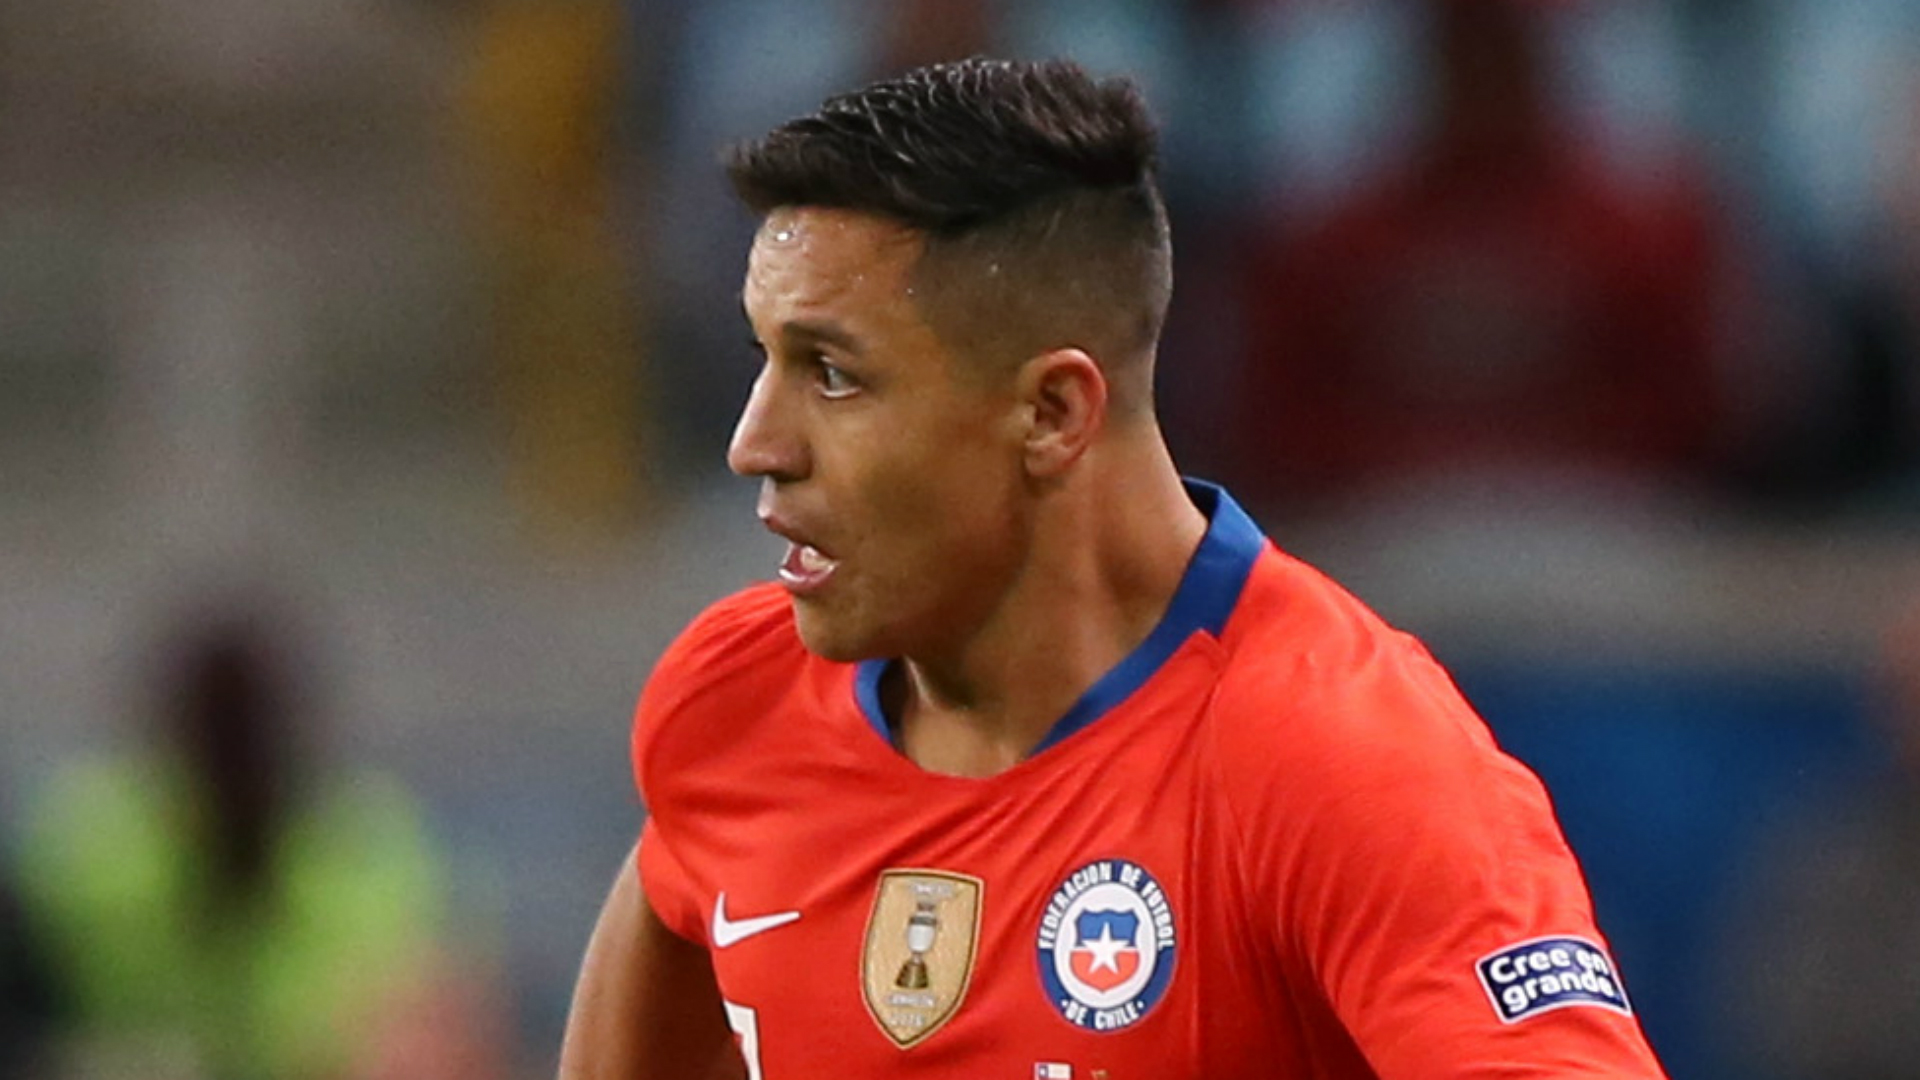 Sanchez released by Chile due to dislocated ankle tendons